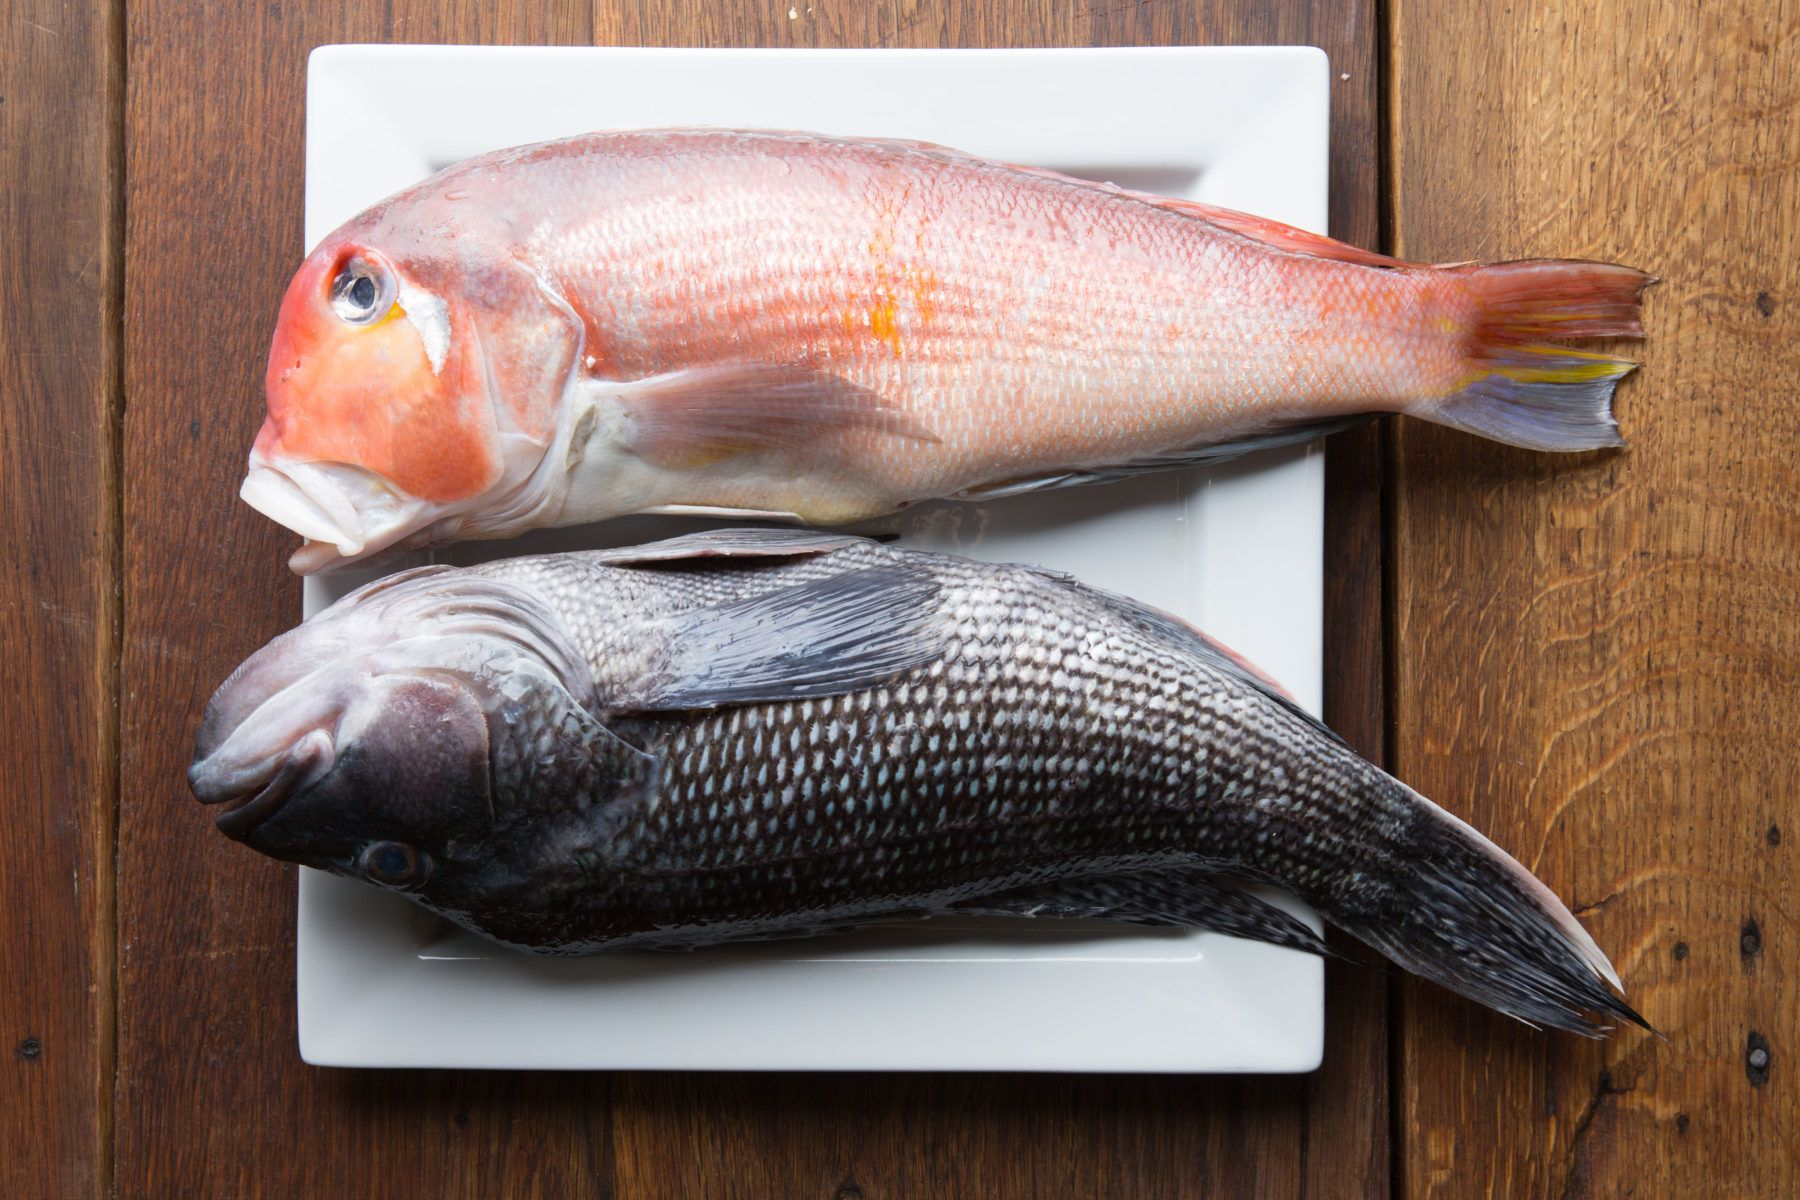 Two whole fish on a plate